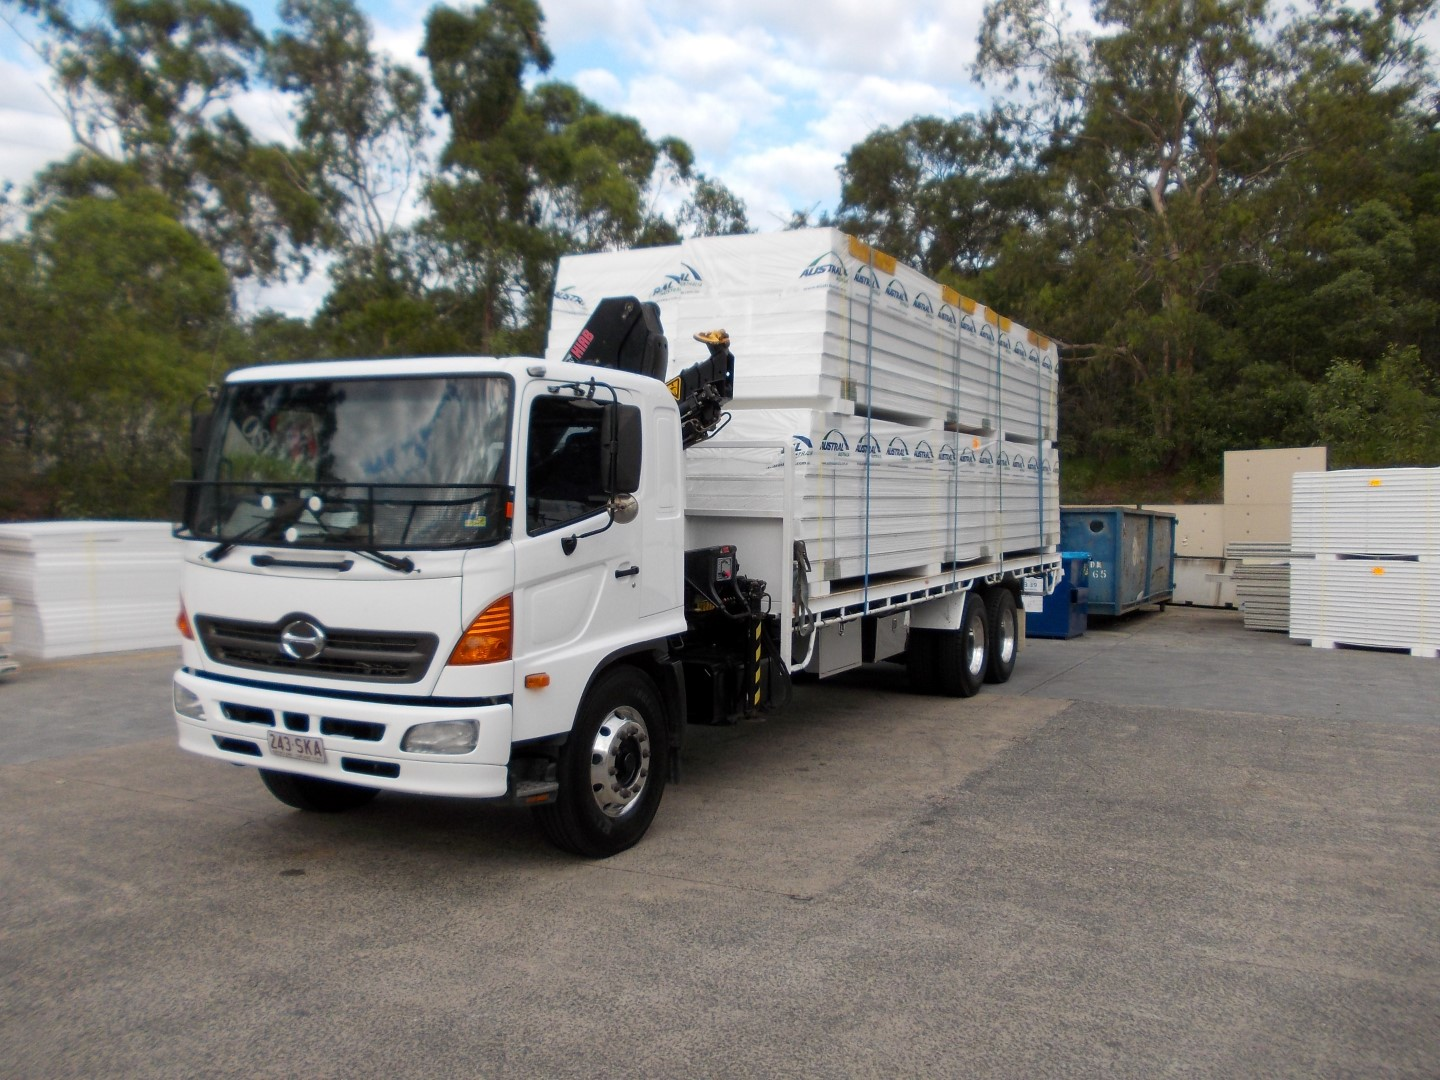 Austral delivery